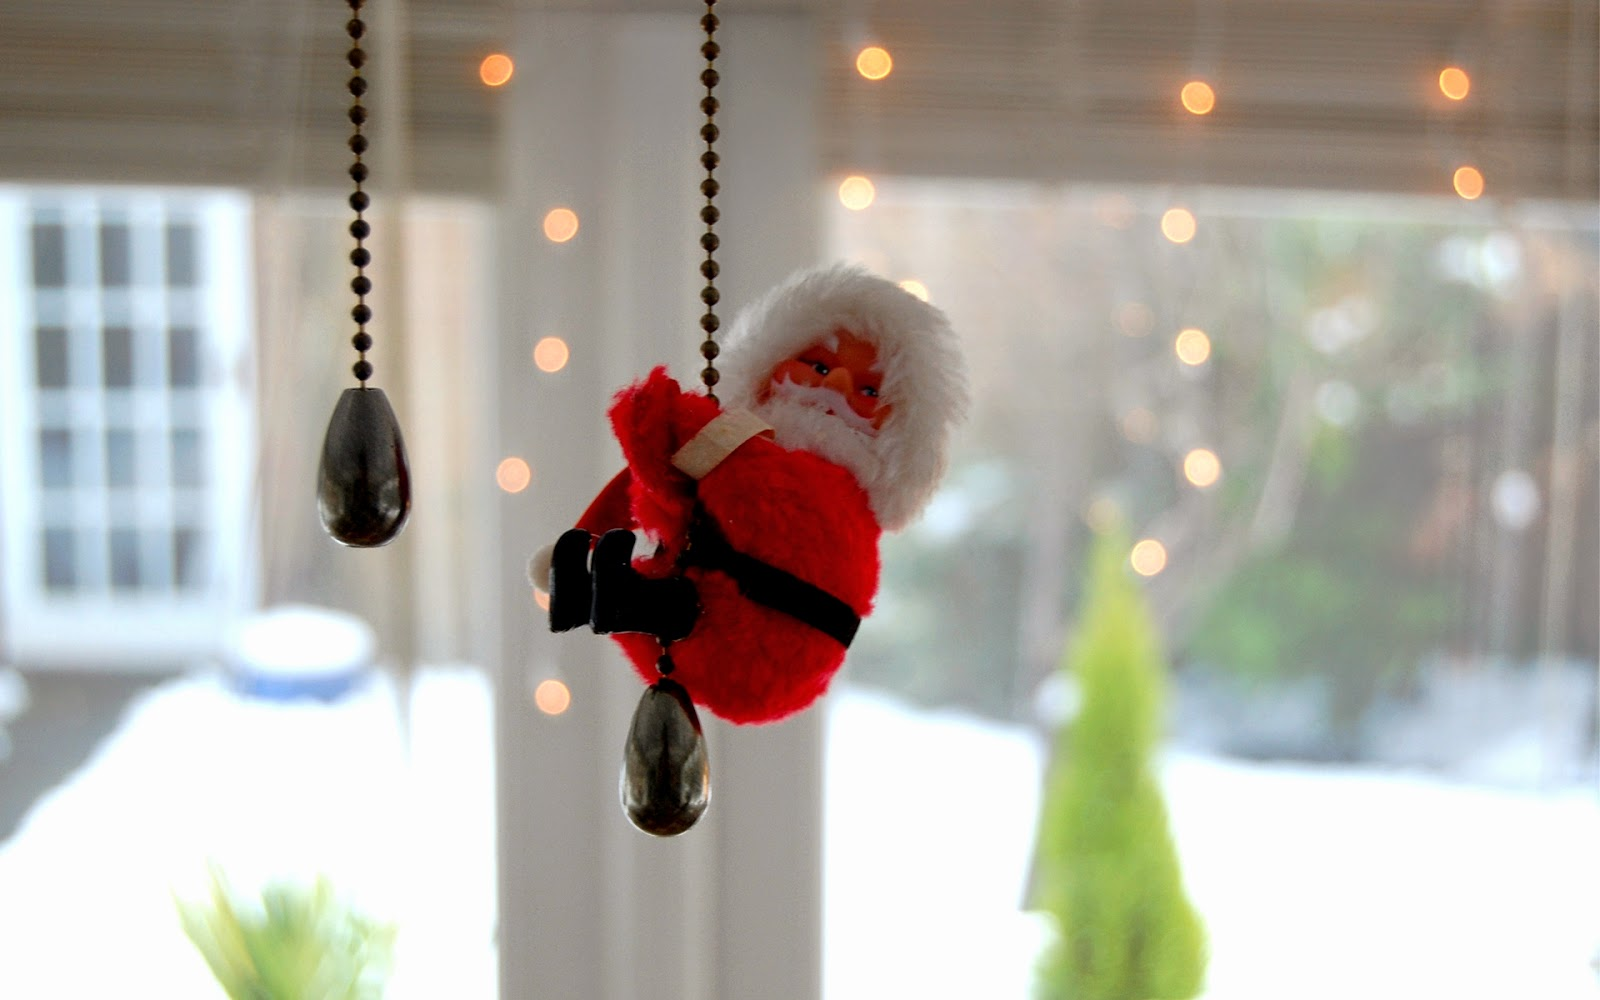 cute-little-santa-toy-hanging-funny-decoration-doll-for-children-1920x1200.jpg